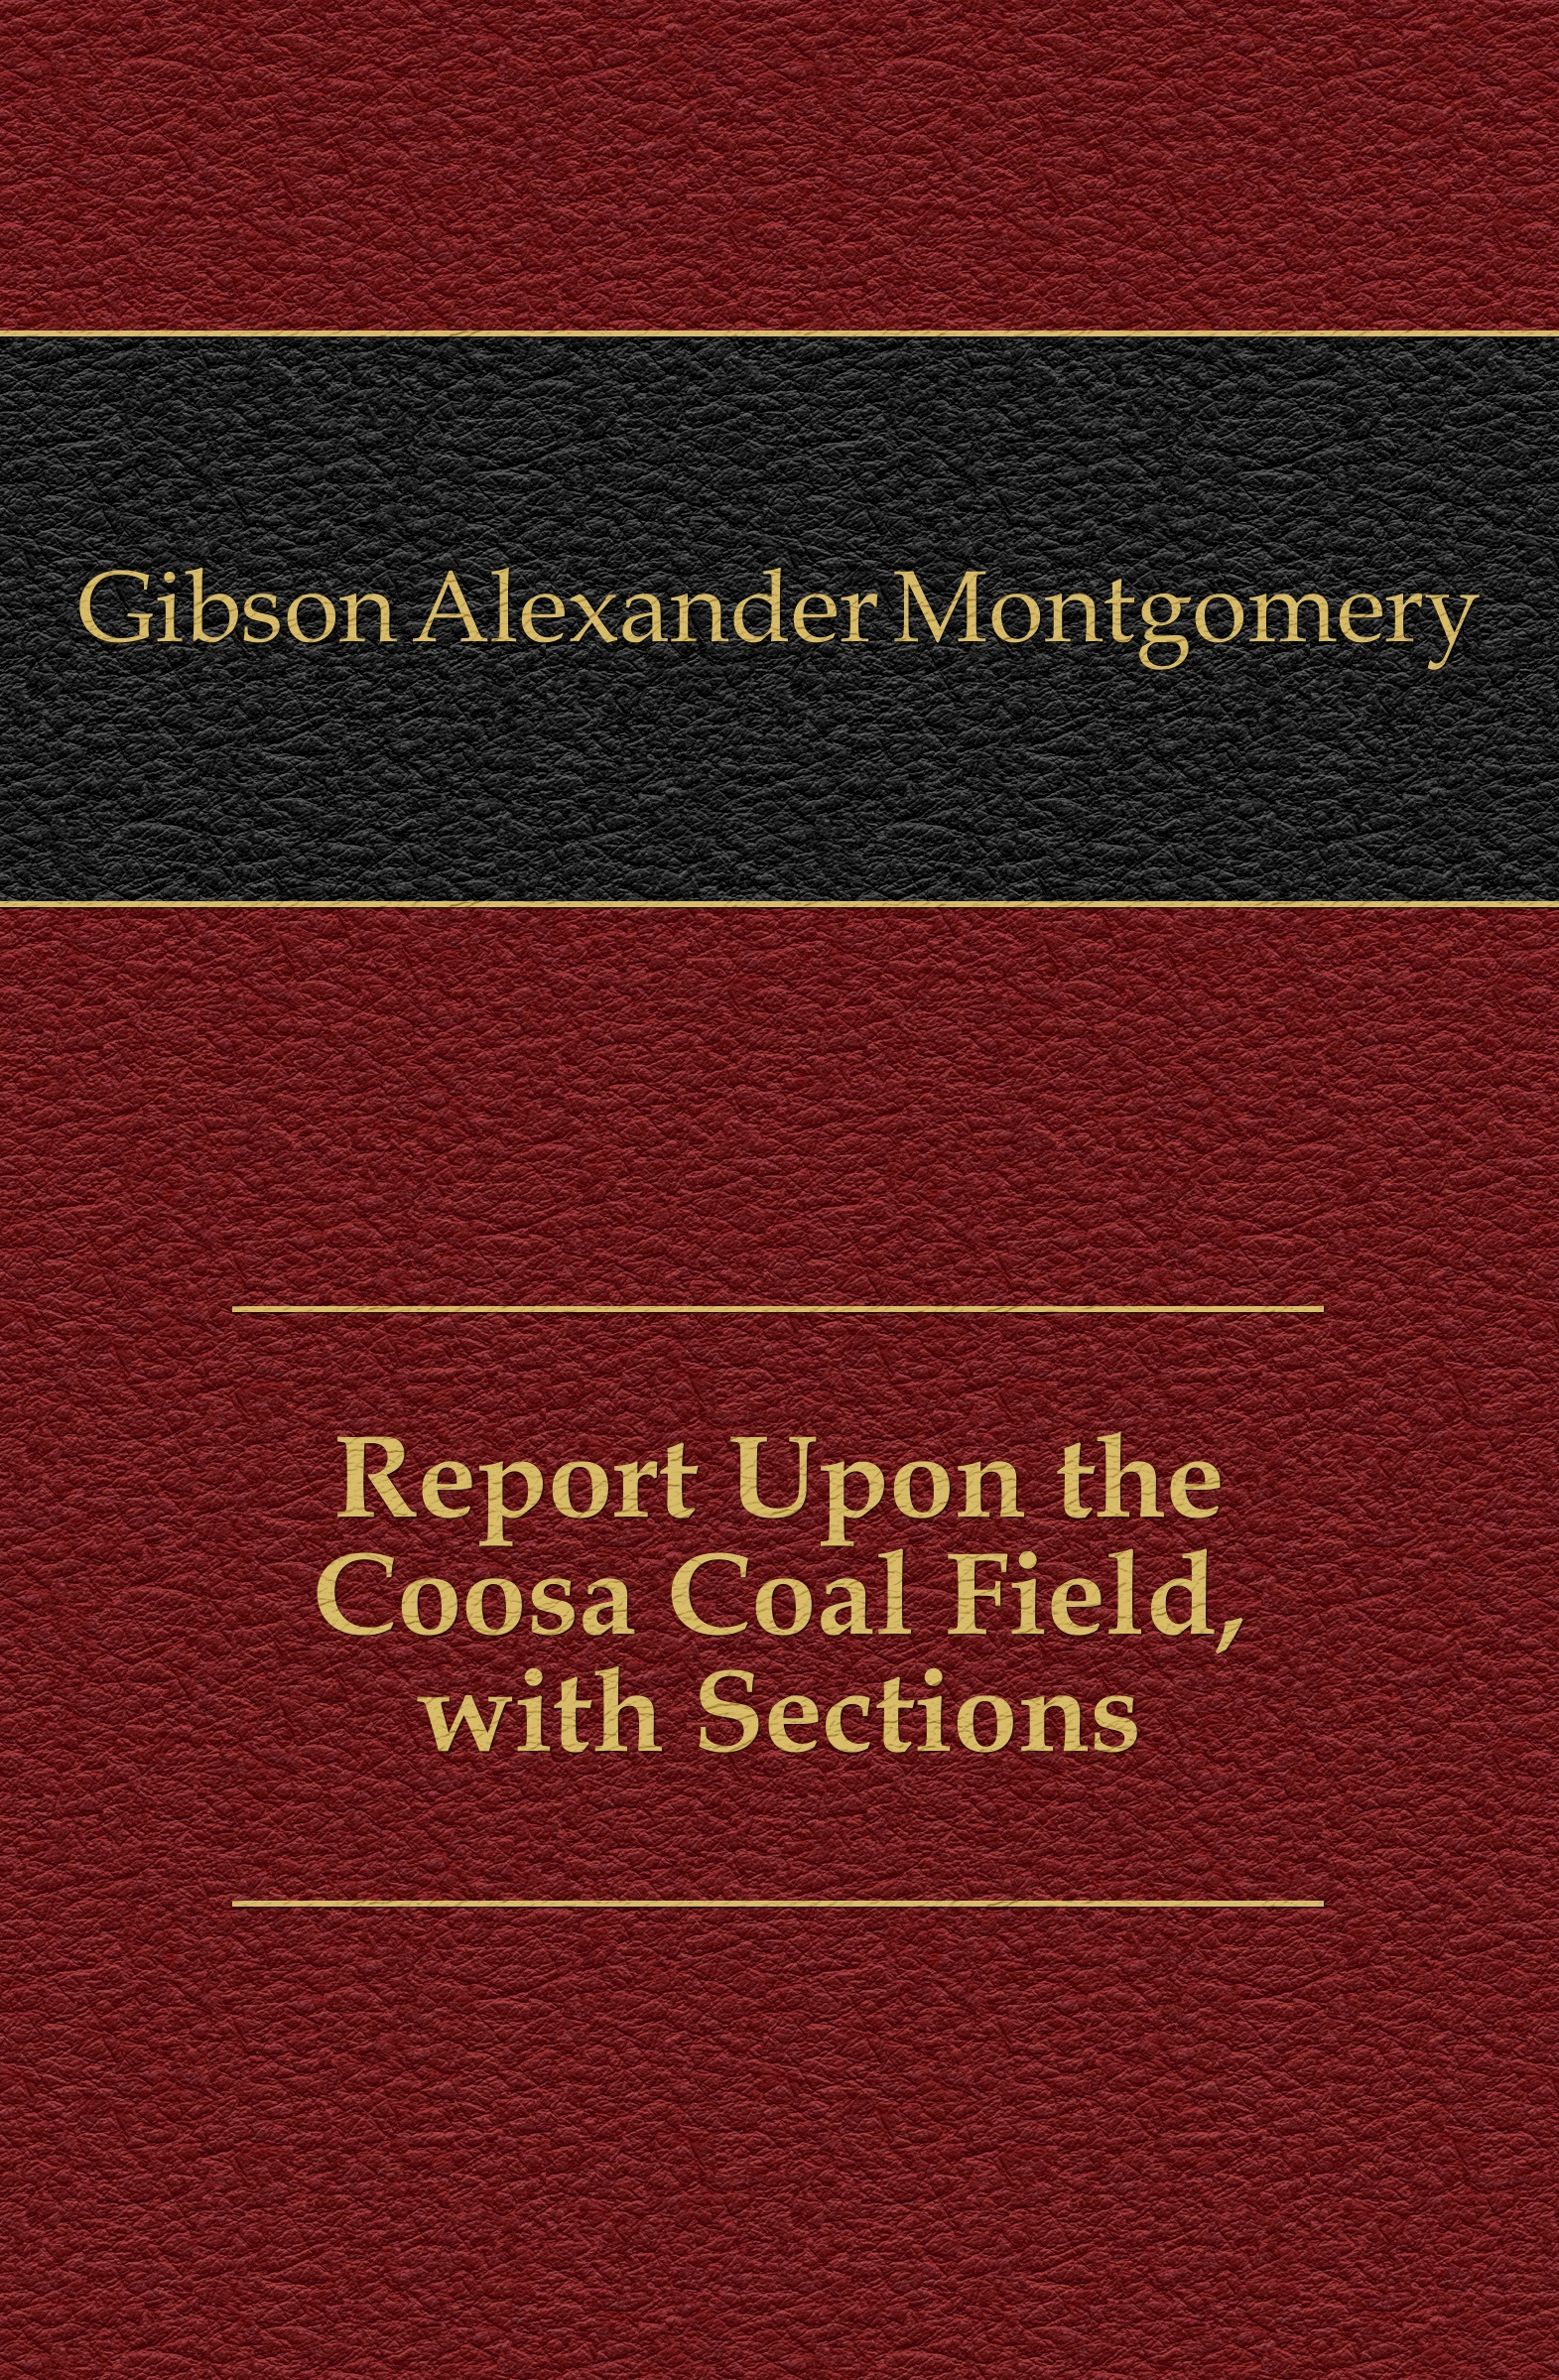 Gibson Alexander Montgomery Report Upon the Coosa Coal Field, with Sections